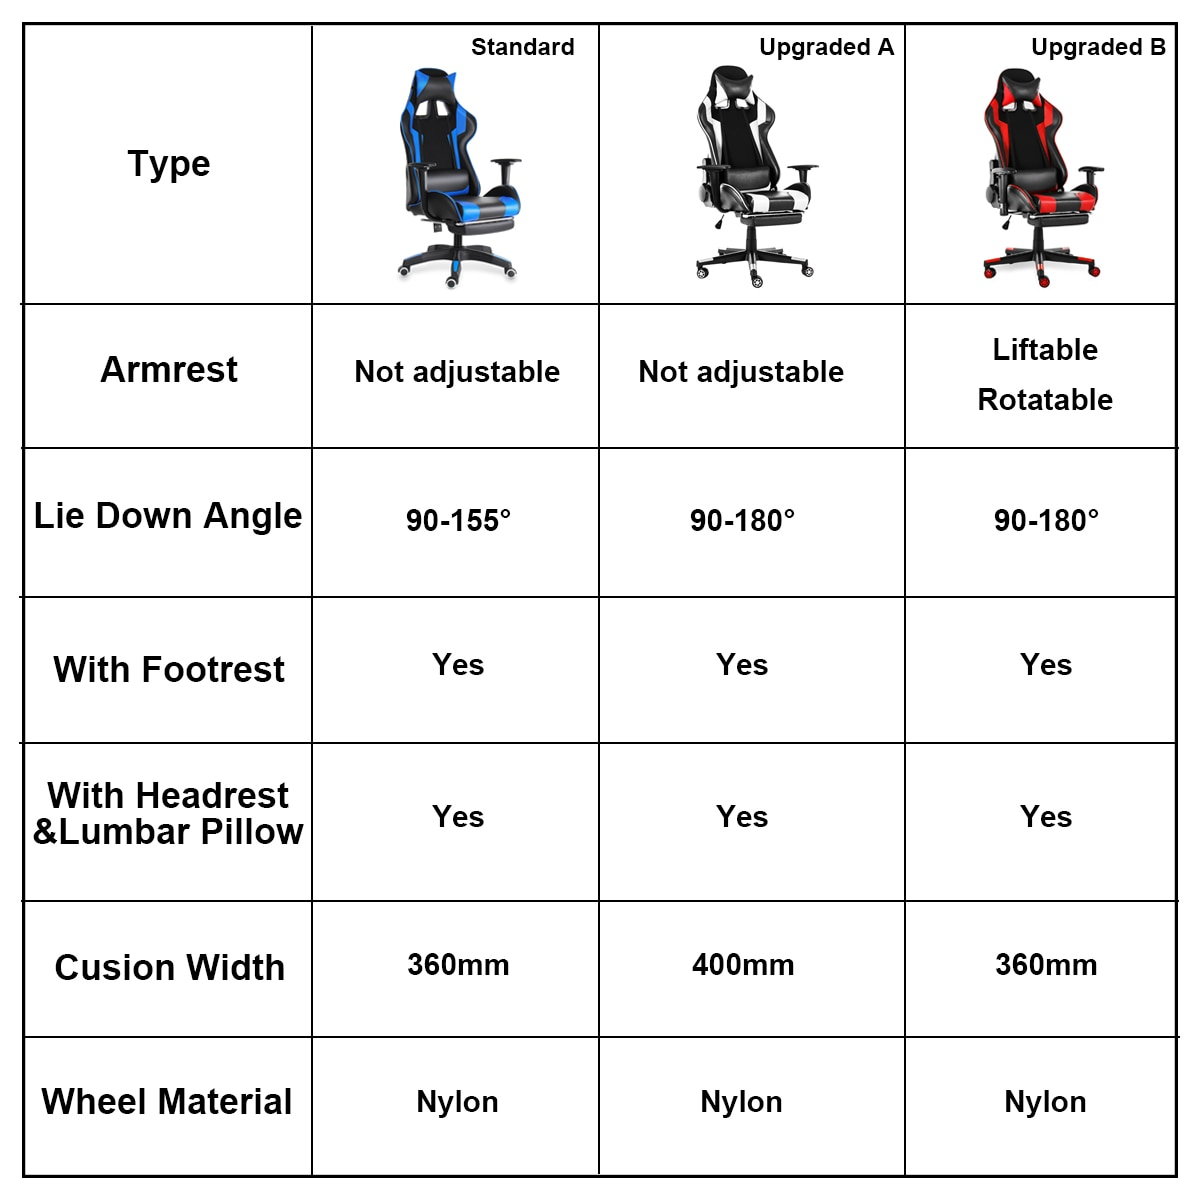 H381fc5152566429e8fdda9f869f8b554f - WCG Gaming Chair Computer Armchair Office Chairs Home Swivel Massage Chair Lifting Adjustable Desk Chair Lying Recliner Chair